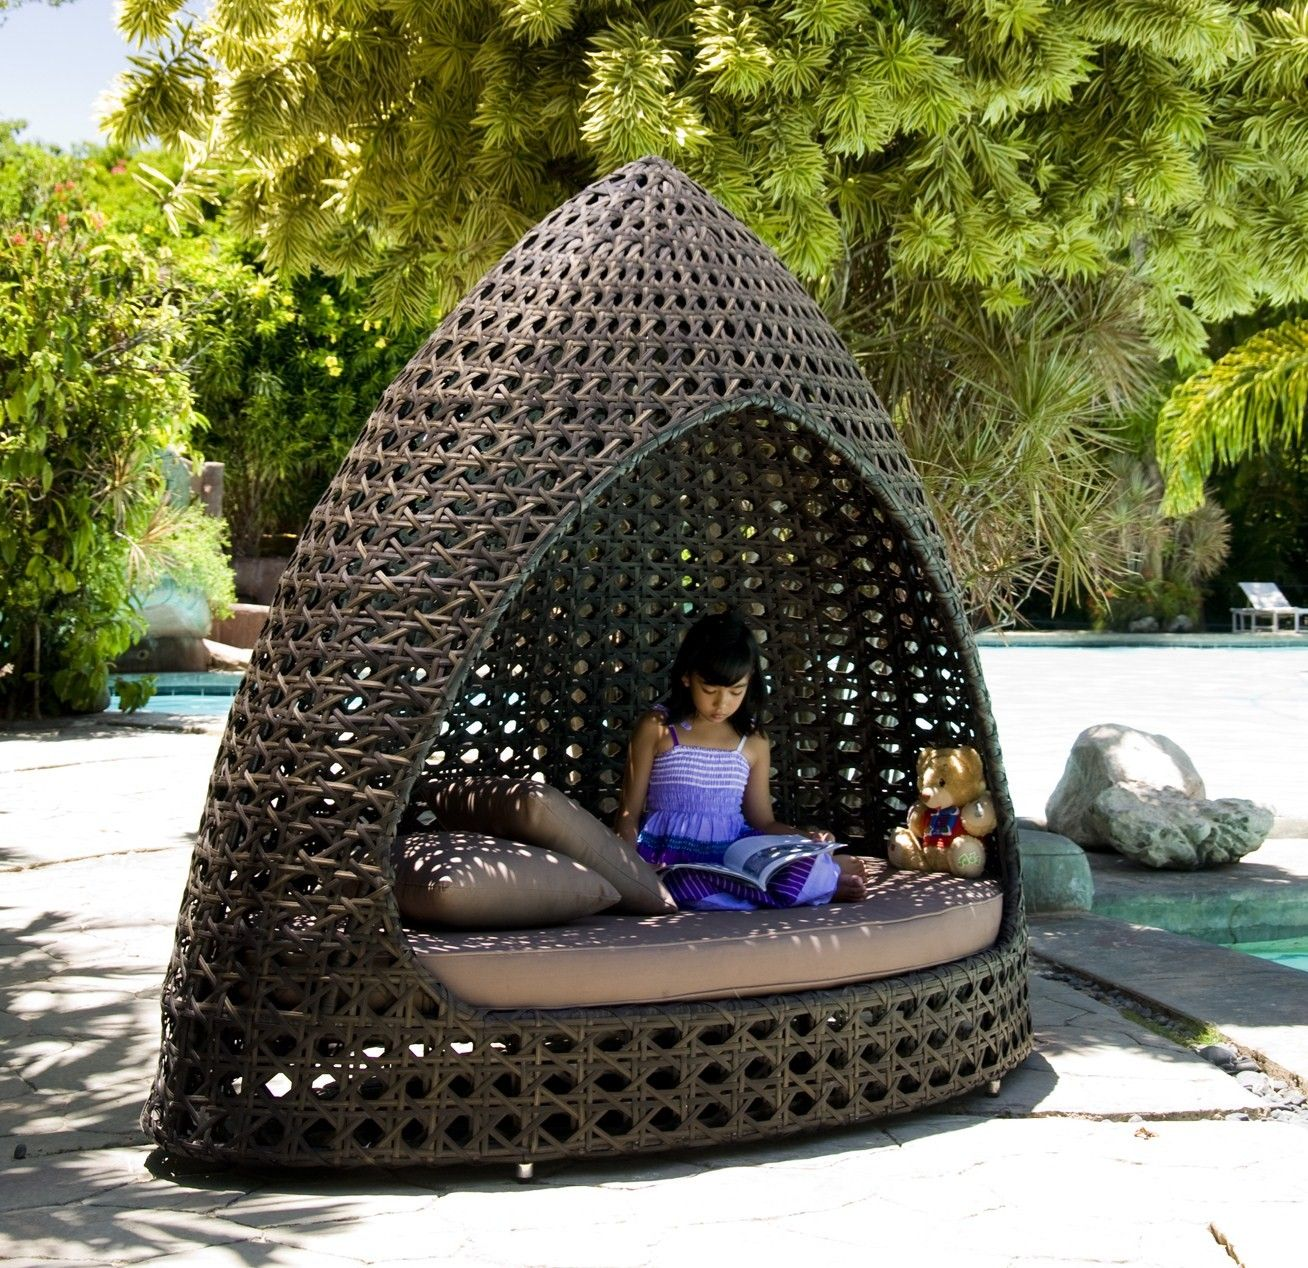 Rattan Daybed. Bronze Weatherproof Wicker Daybed Hut With Canopy u0026 Cushions & Rattan Daybed. Bronze Weatherproof Wicker Daybed Hut With Canopy ...